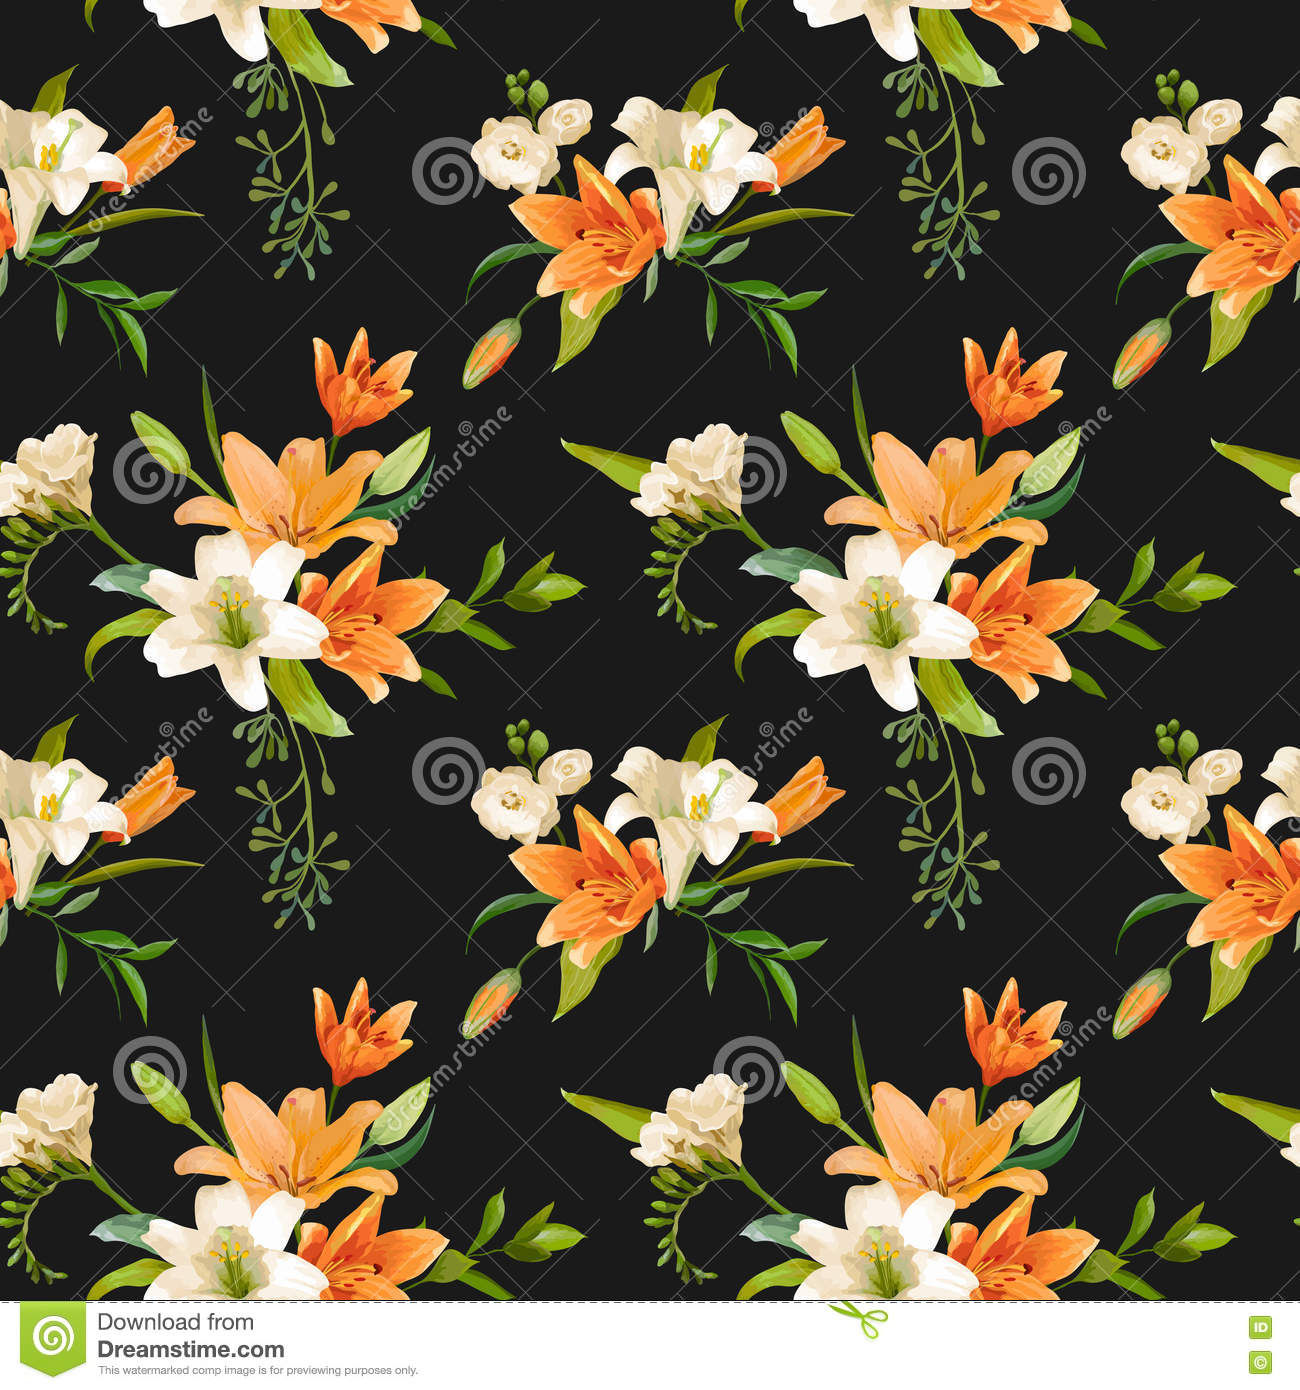 Spring lily flowers background seamless floral pattern stock download spring lily flowers background seamless floral pattern stock vector illustration of vintage izmirmasajfo